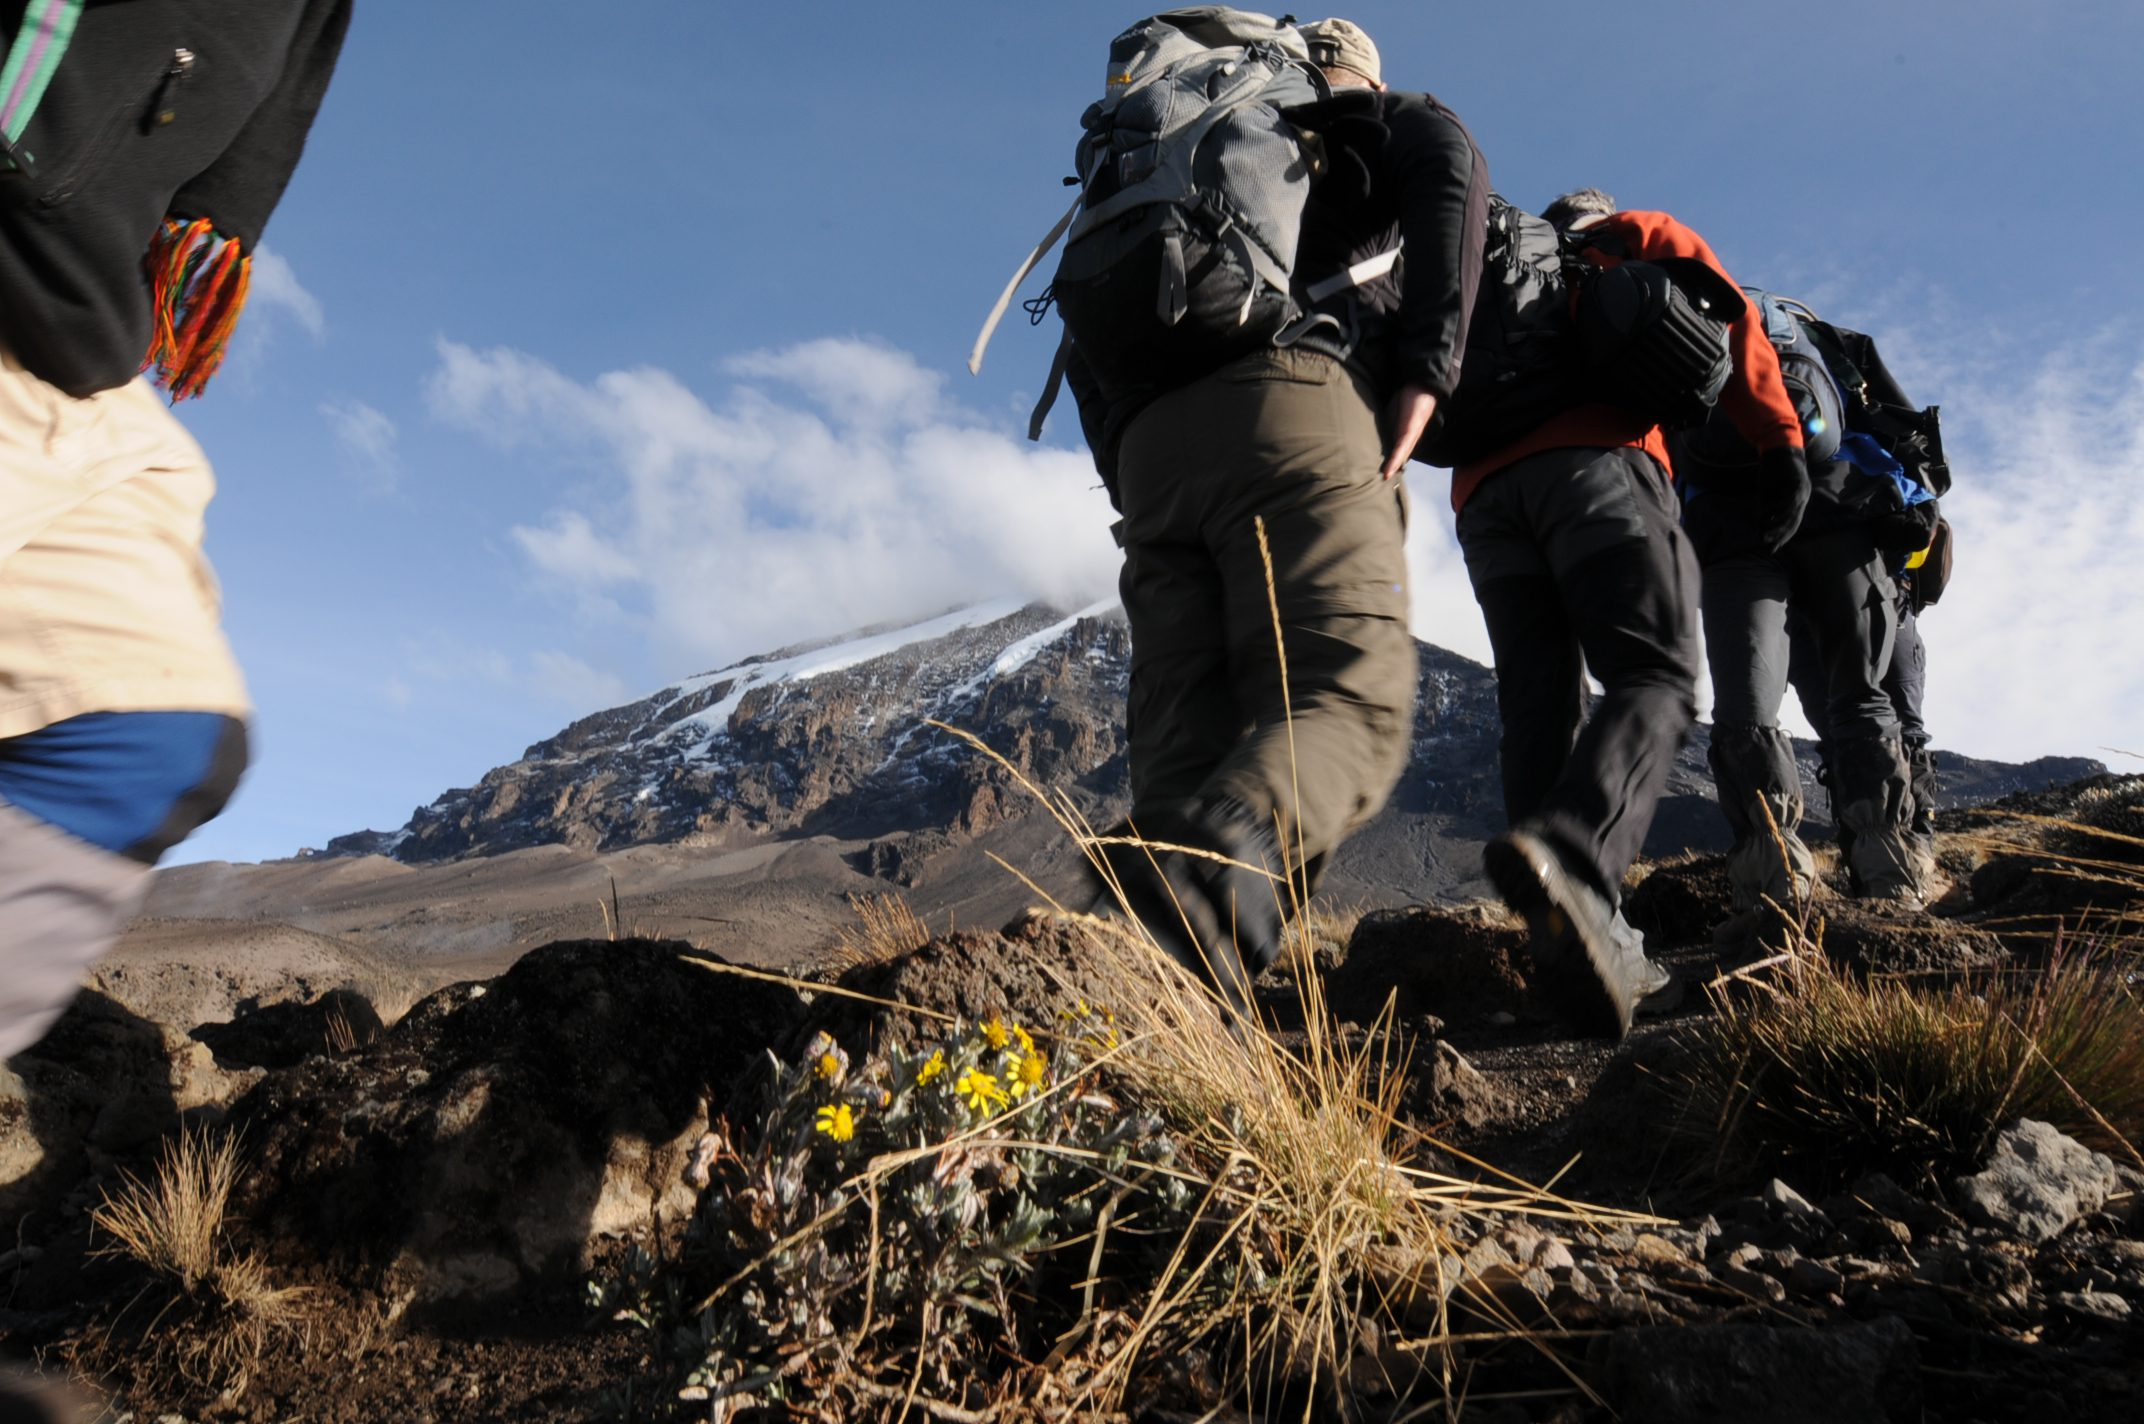 Hikers Climbing Mt Kilimanjaro with the summit in background on hiking and climbing vacation